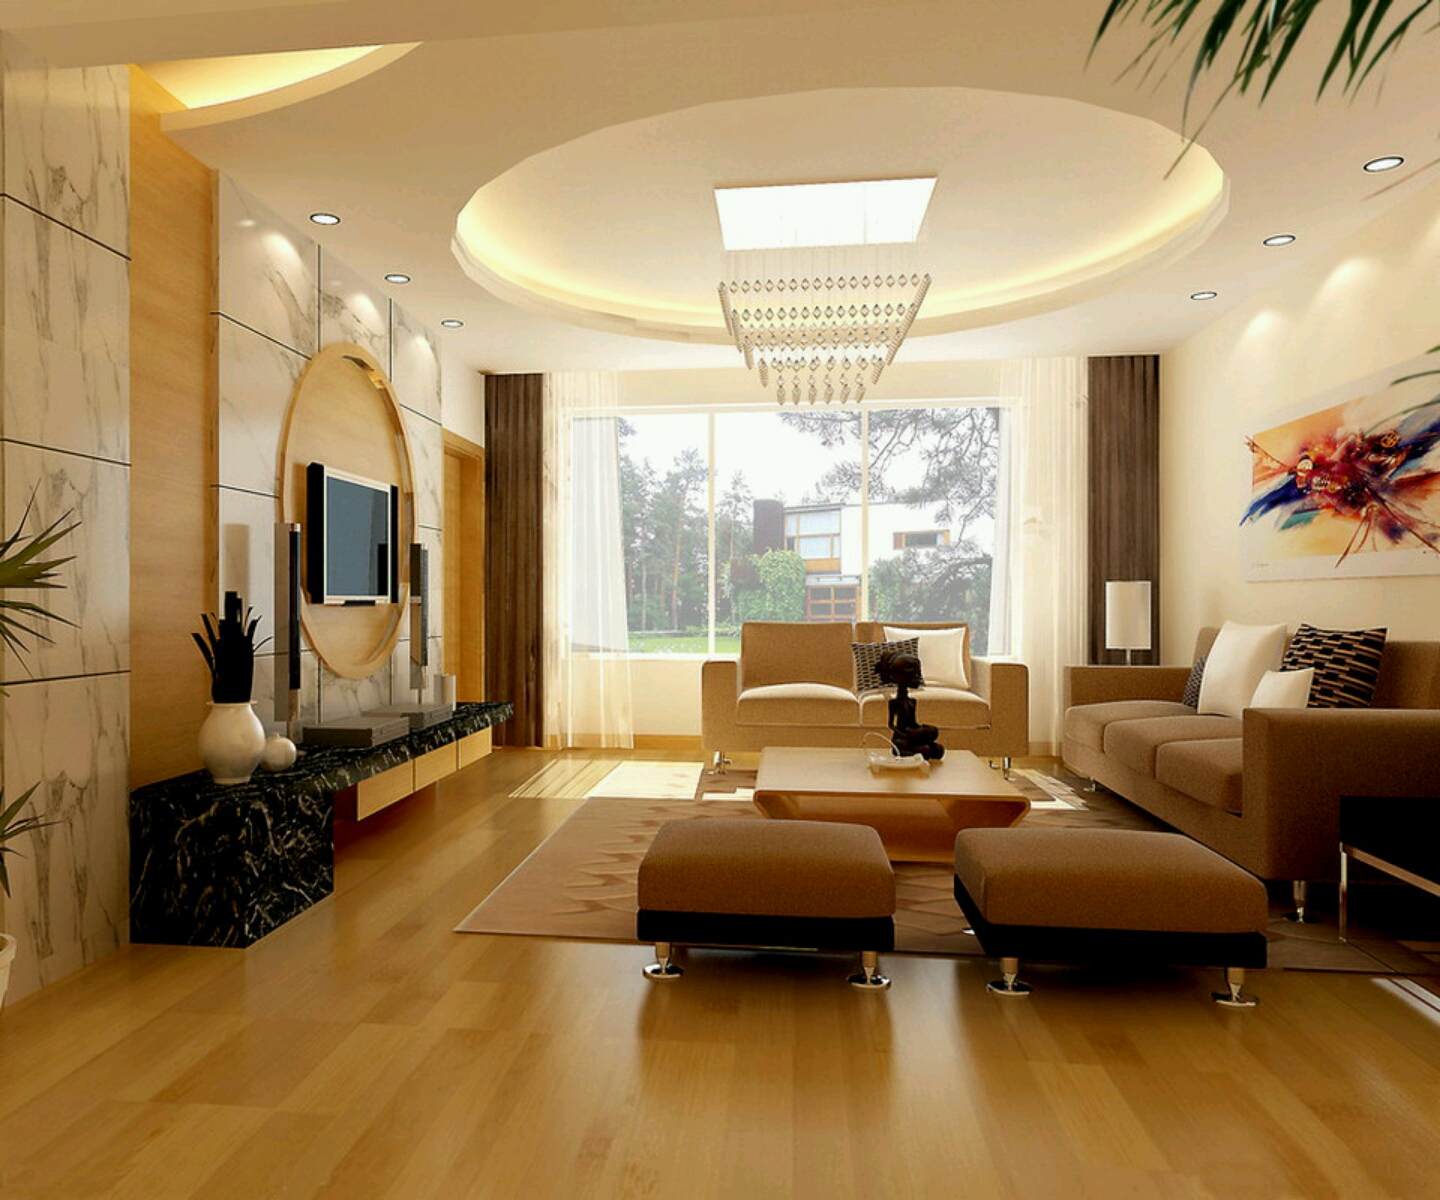 Modern interior decoration living rooms ceiling designs for New style living room design